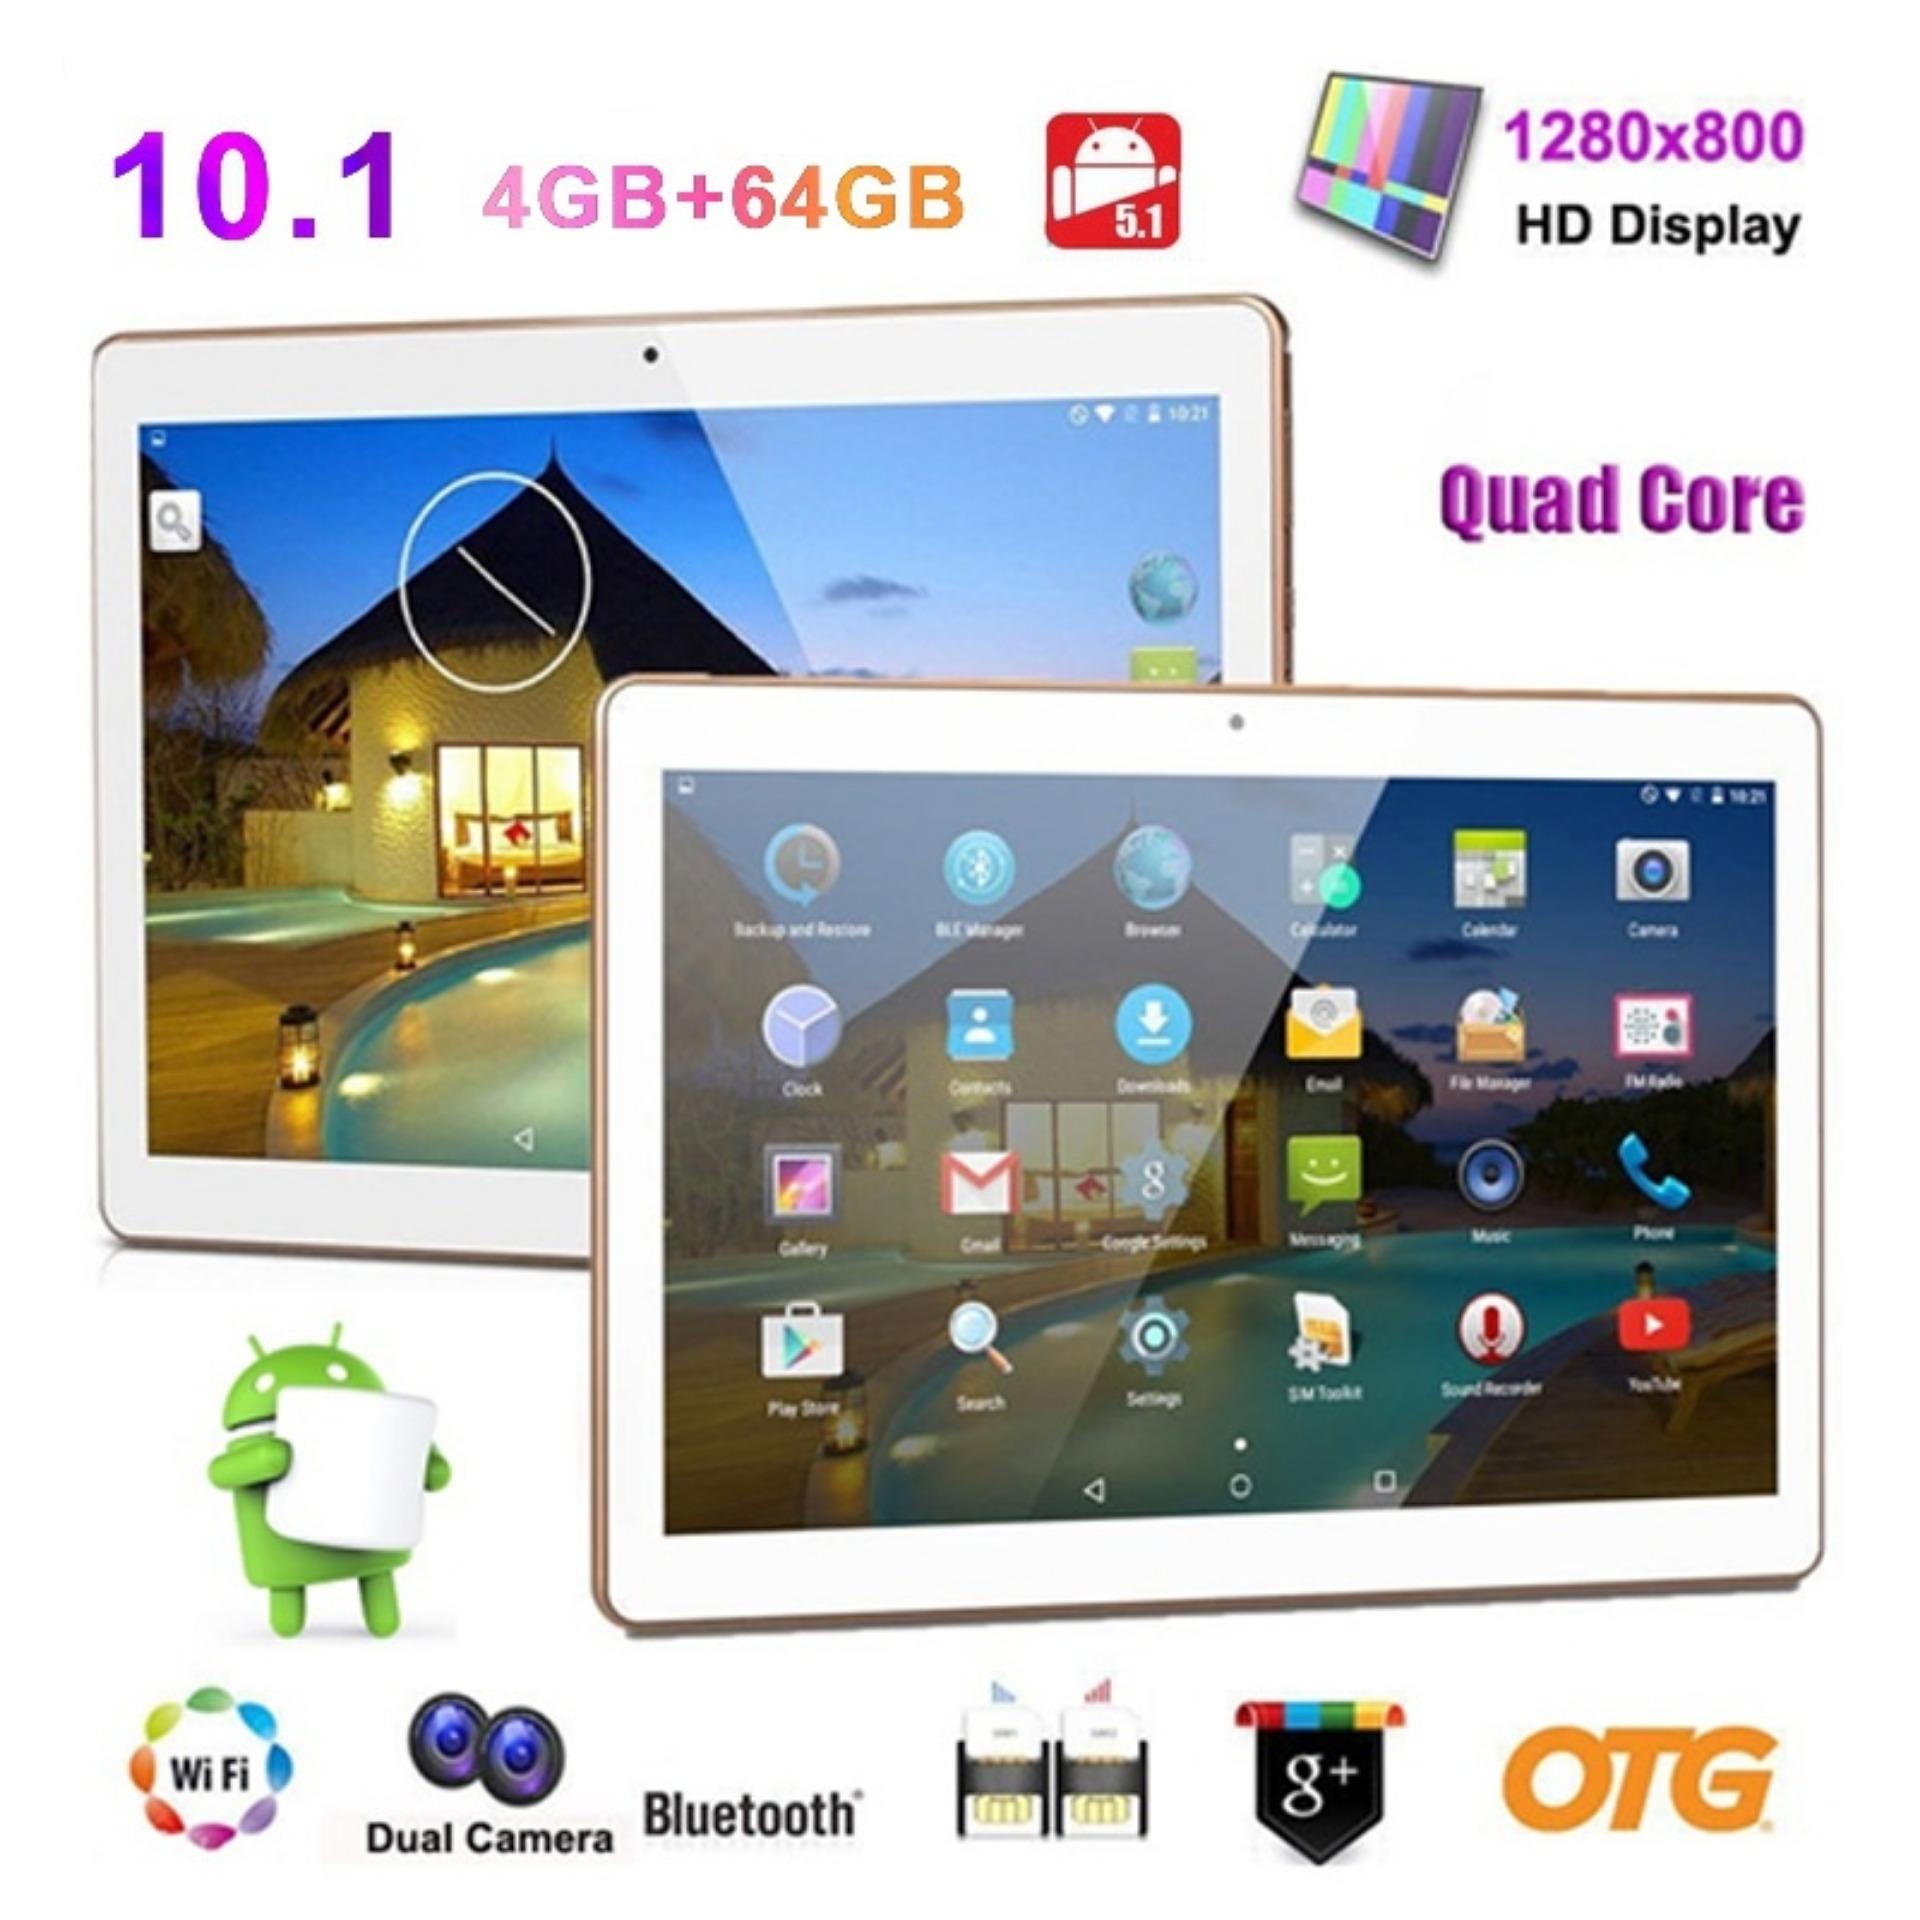 Tablet 10 Inch Octa-Core 4G Ram 32G Rom Android 5.1 Dual SIM IPS Screen MIC US Plug